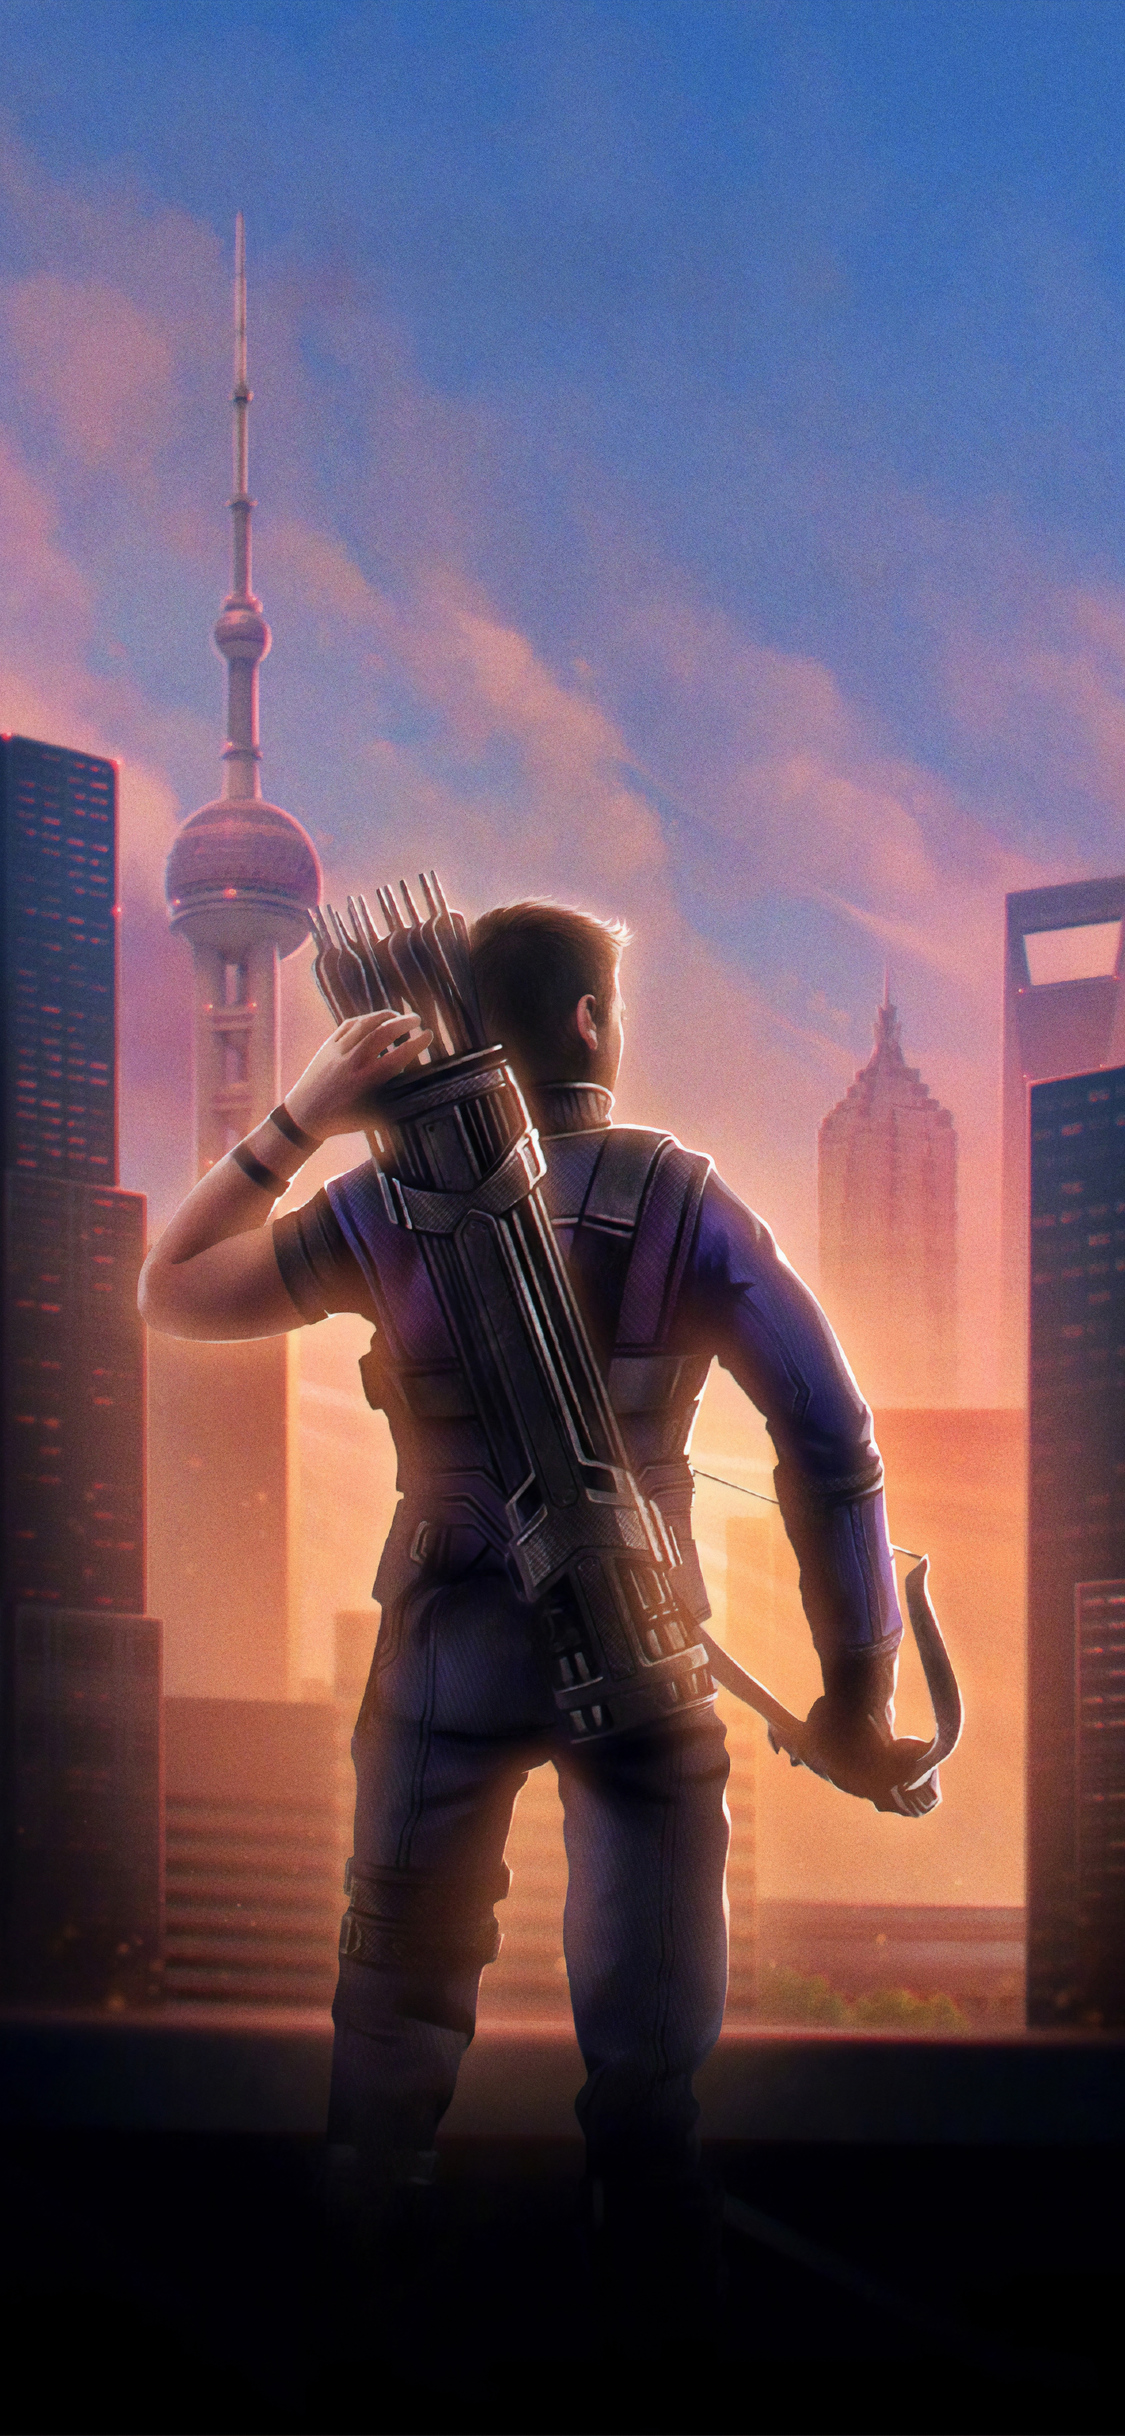 1125x2436 Hawkeye Avengers Endgame Chinese Poster Iphone Xs